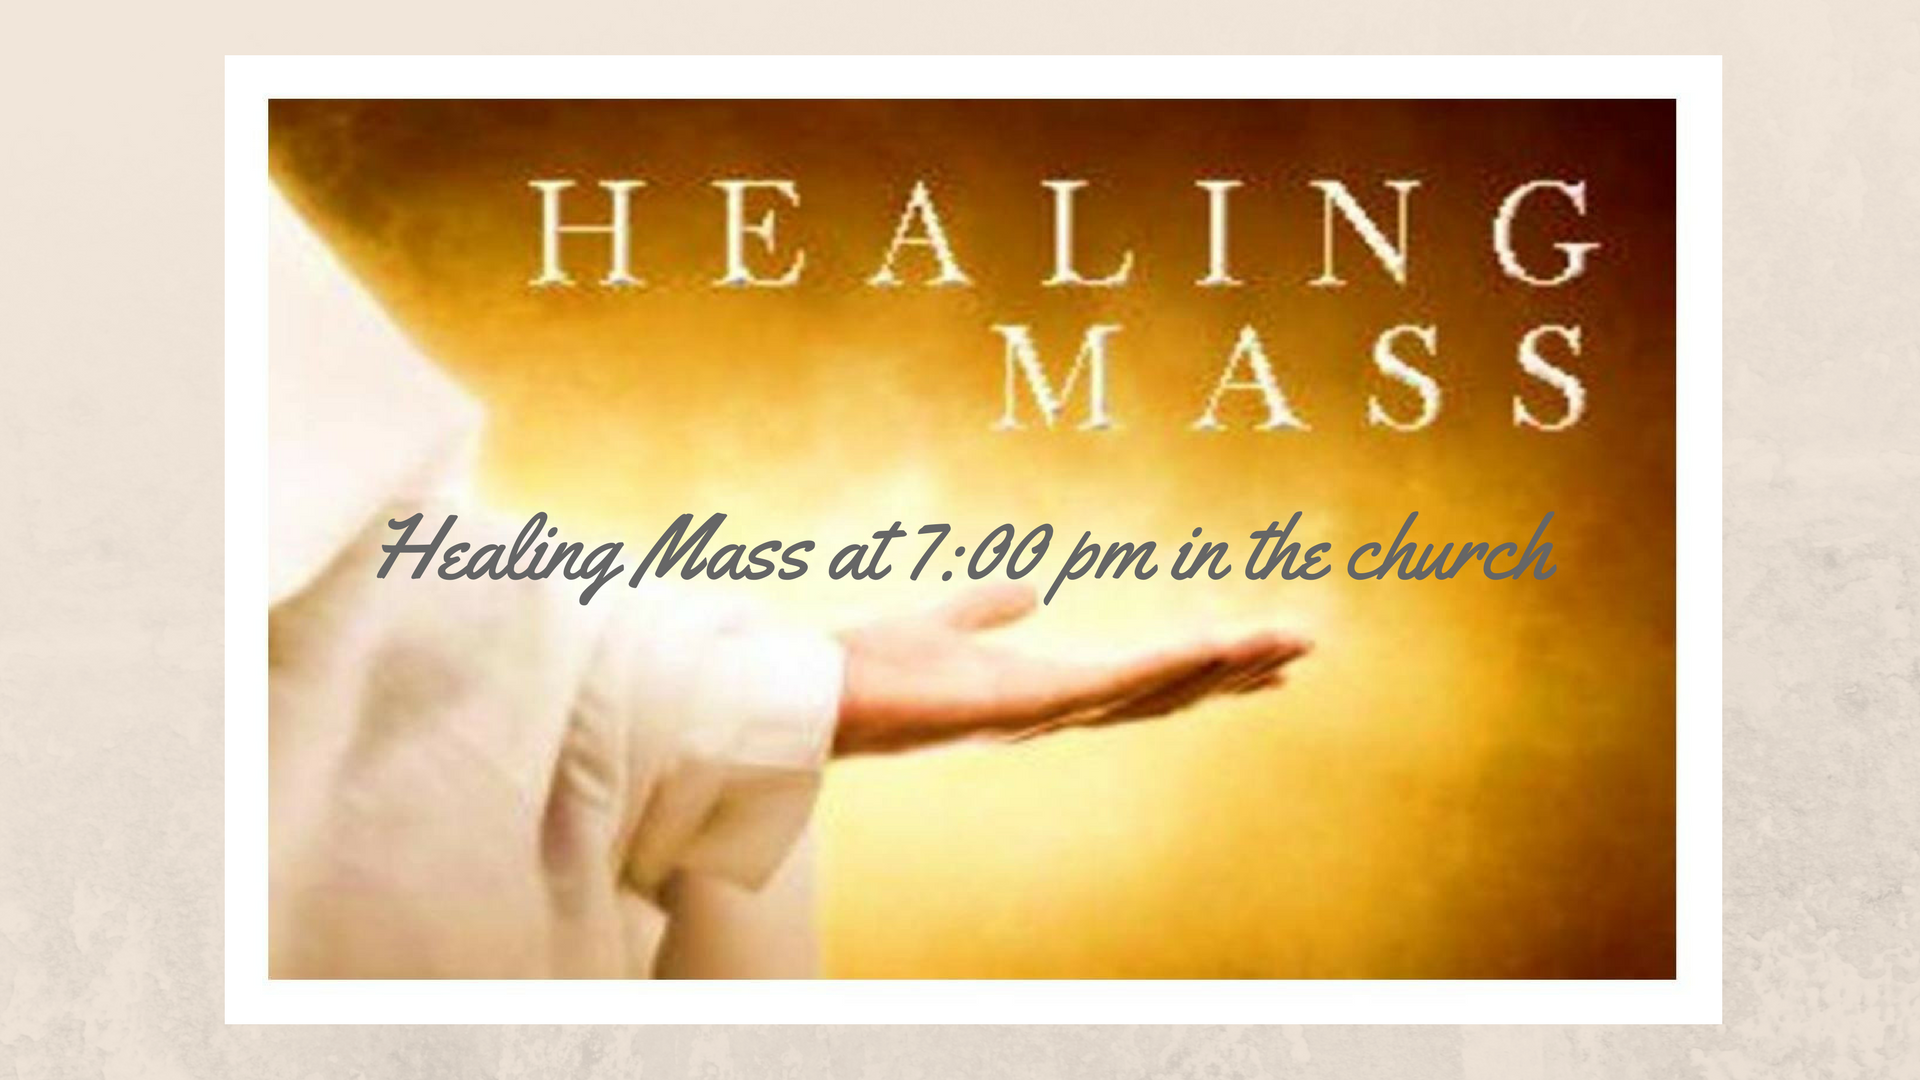 SUSPENDED - 7 pm Healing Mass in the Church with refreshments in the cafeteria to follow